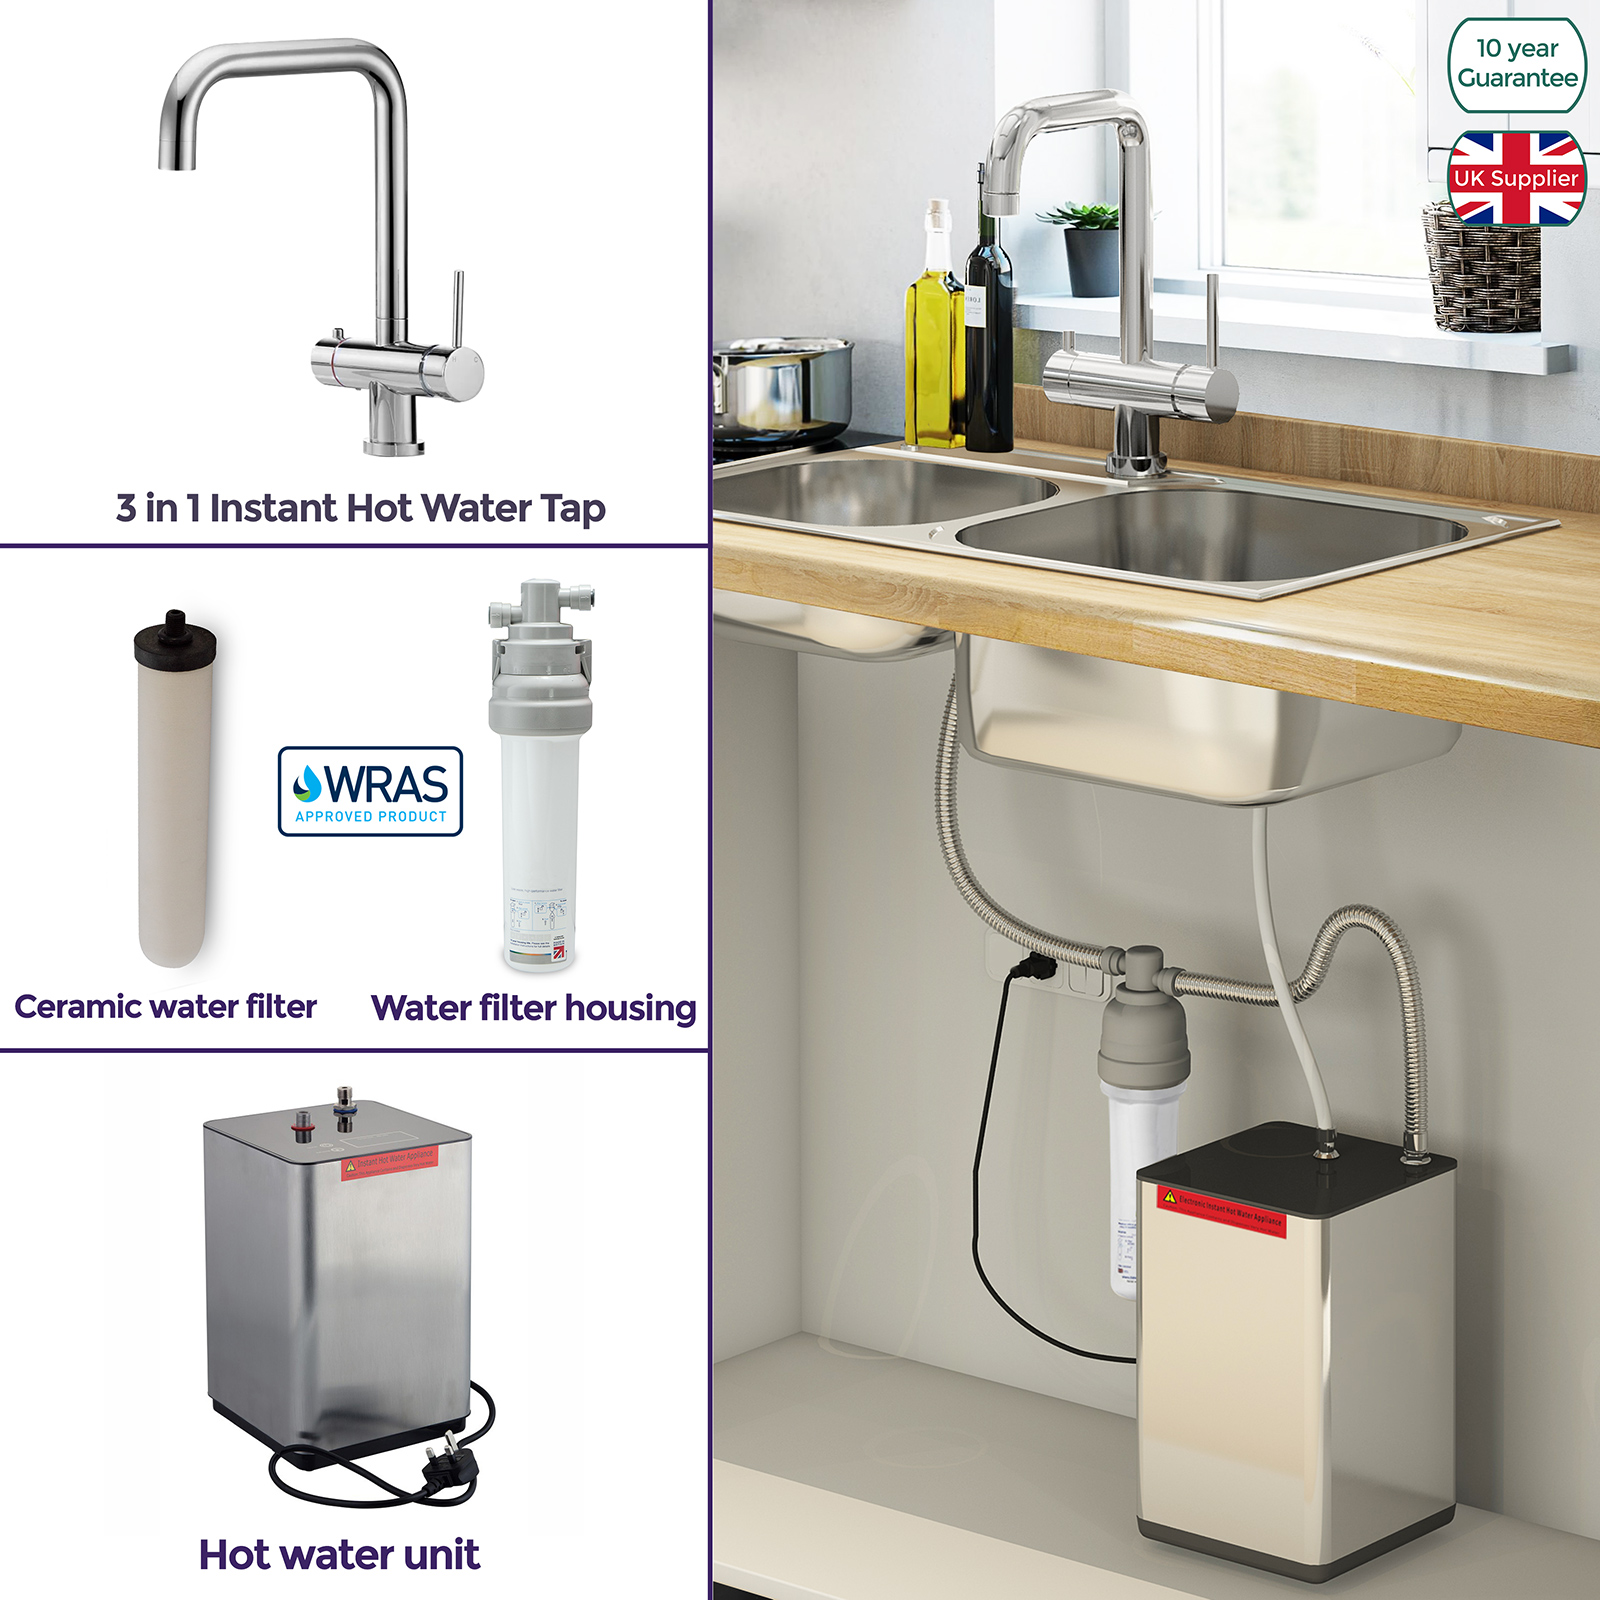 Details about NES HOME INSTANT HOT BOILING & COLD WATER KITCHEN FILTER TAP  3 IN 1 HEATING UNIT